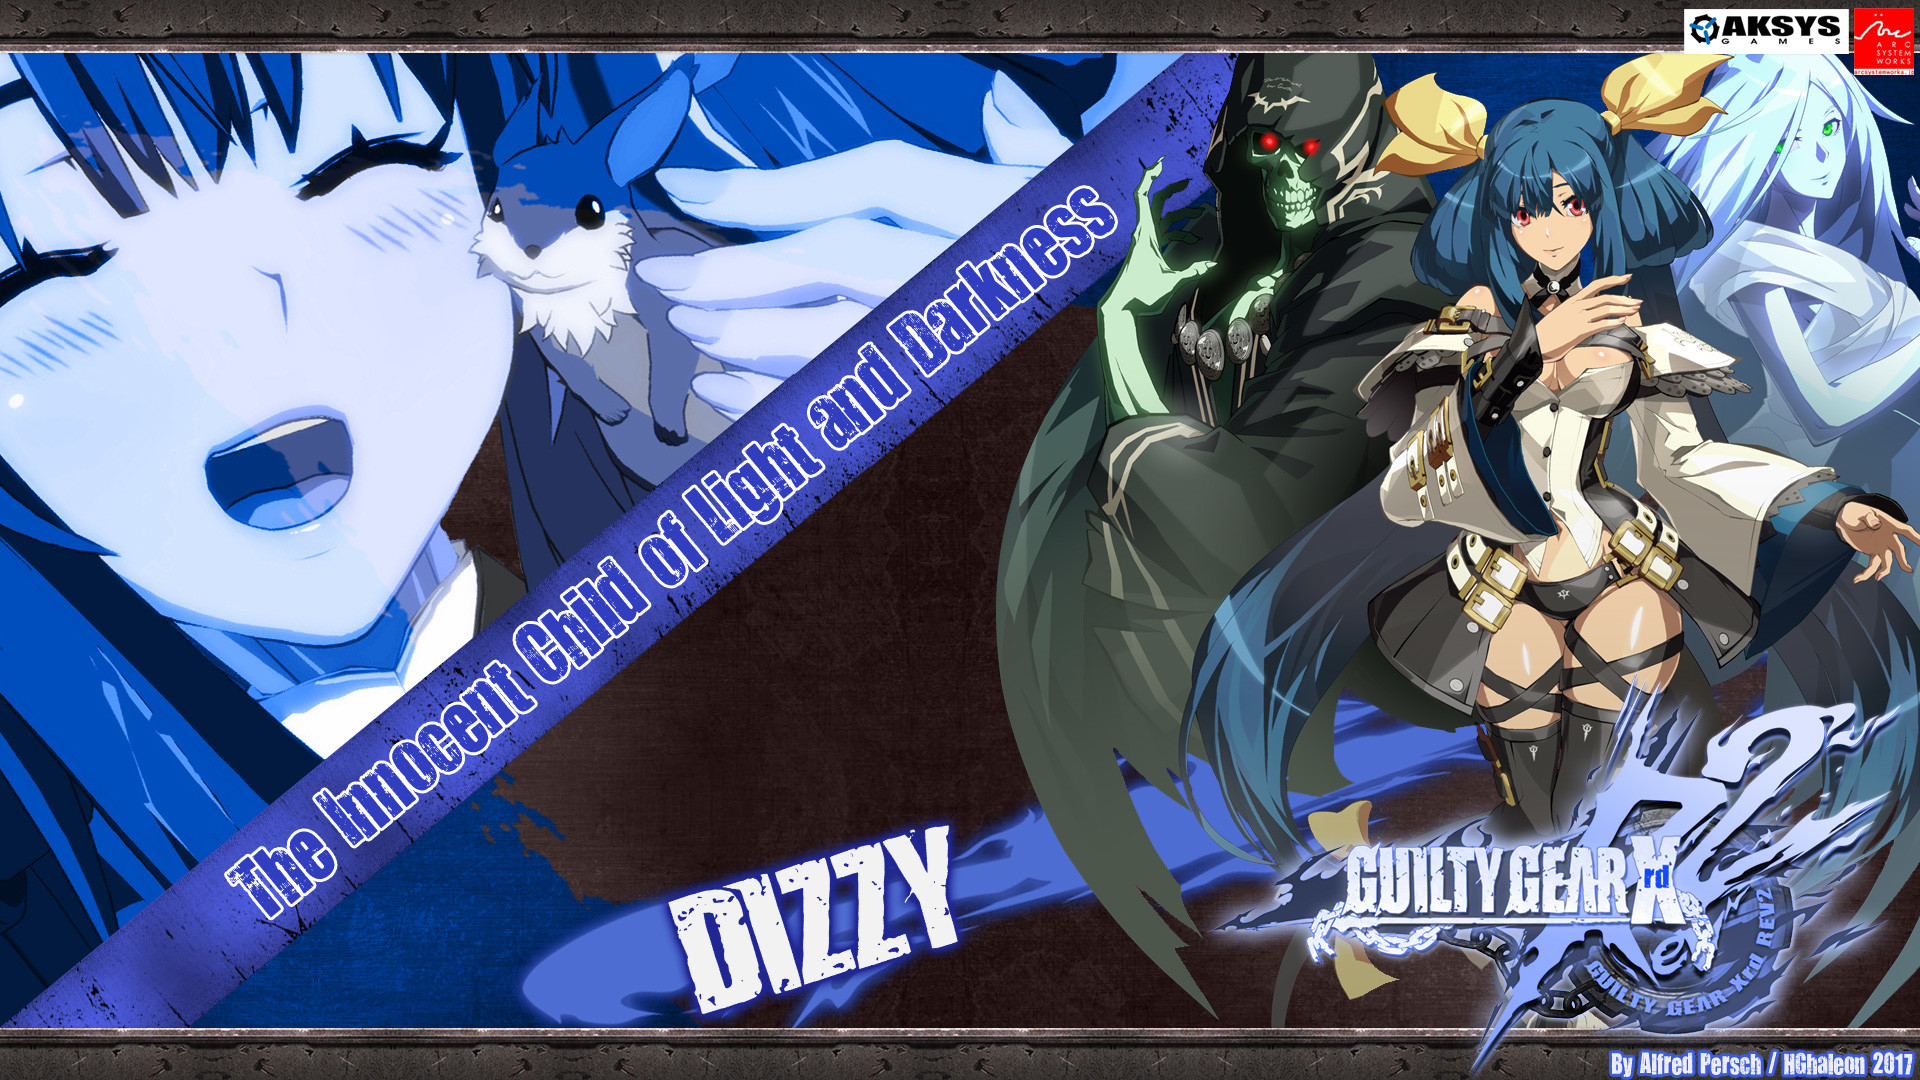 guilty gear x blazblue music live 2014 download